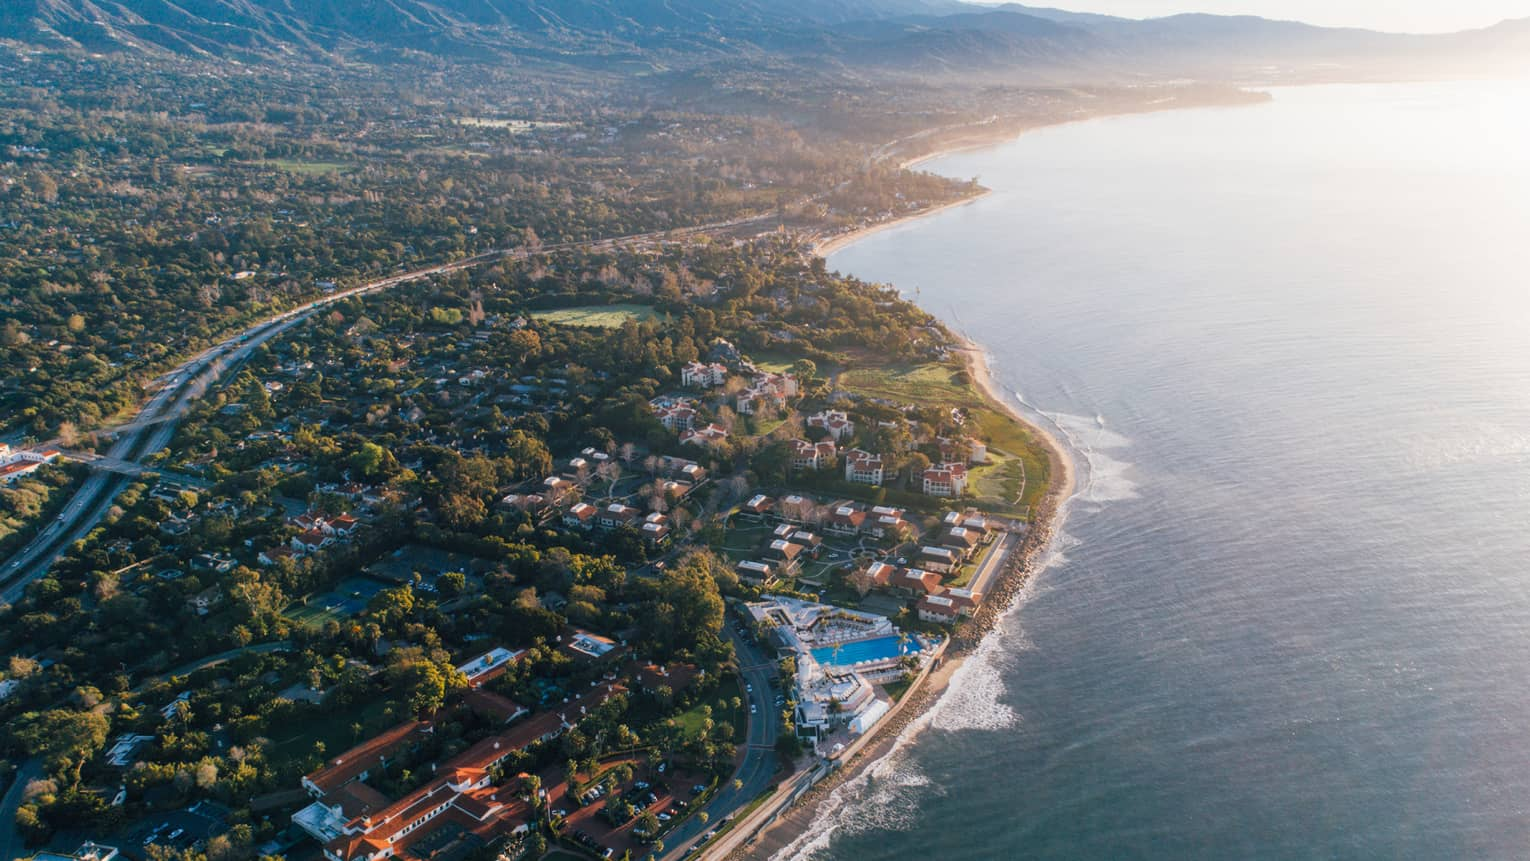 Aerial view of Santa Barbara coastline, trees and winding highways at sunset